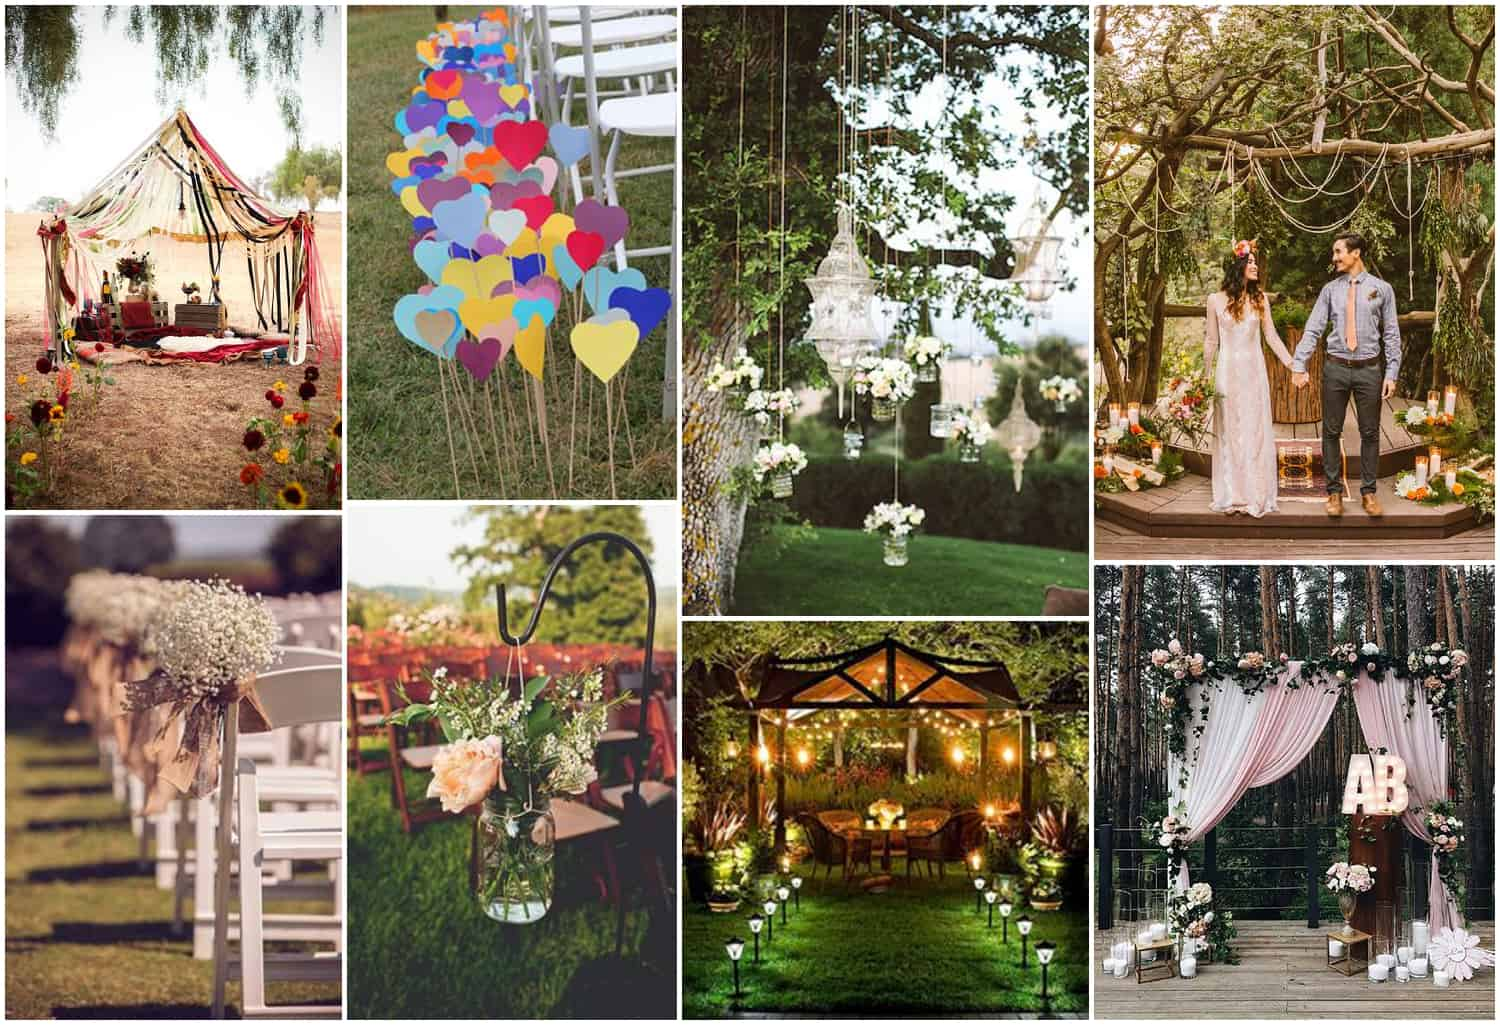 Outdoor Weddings Gazebo Inspiration